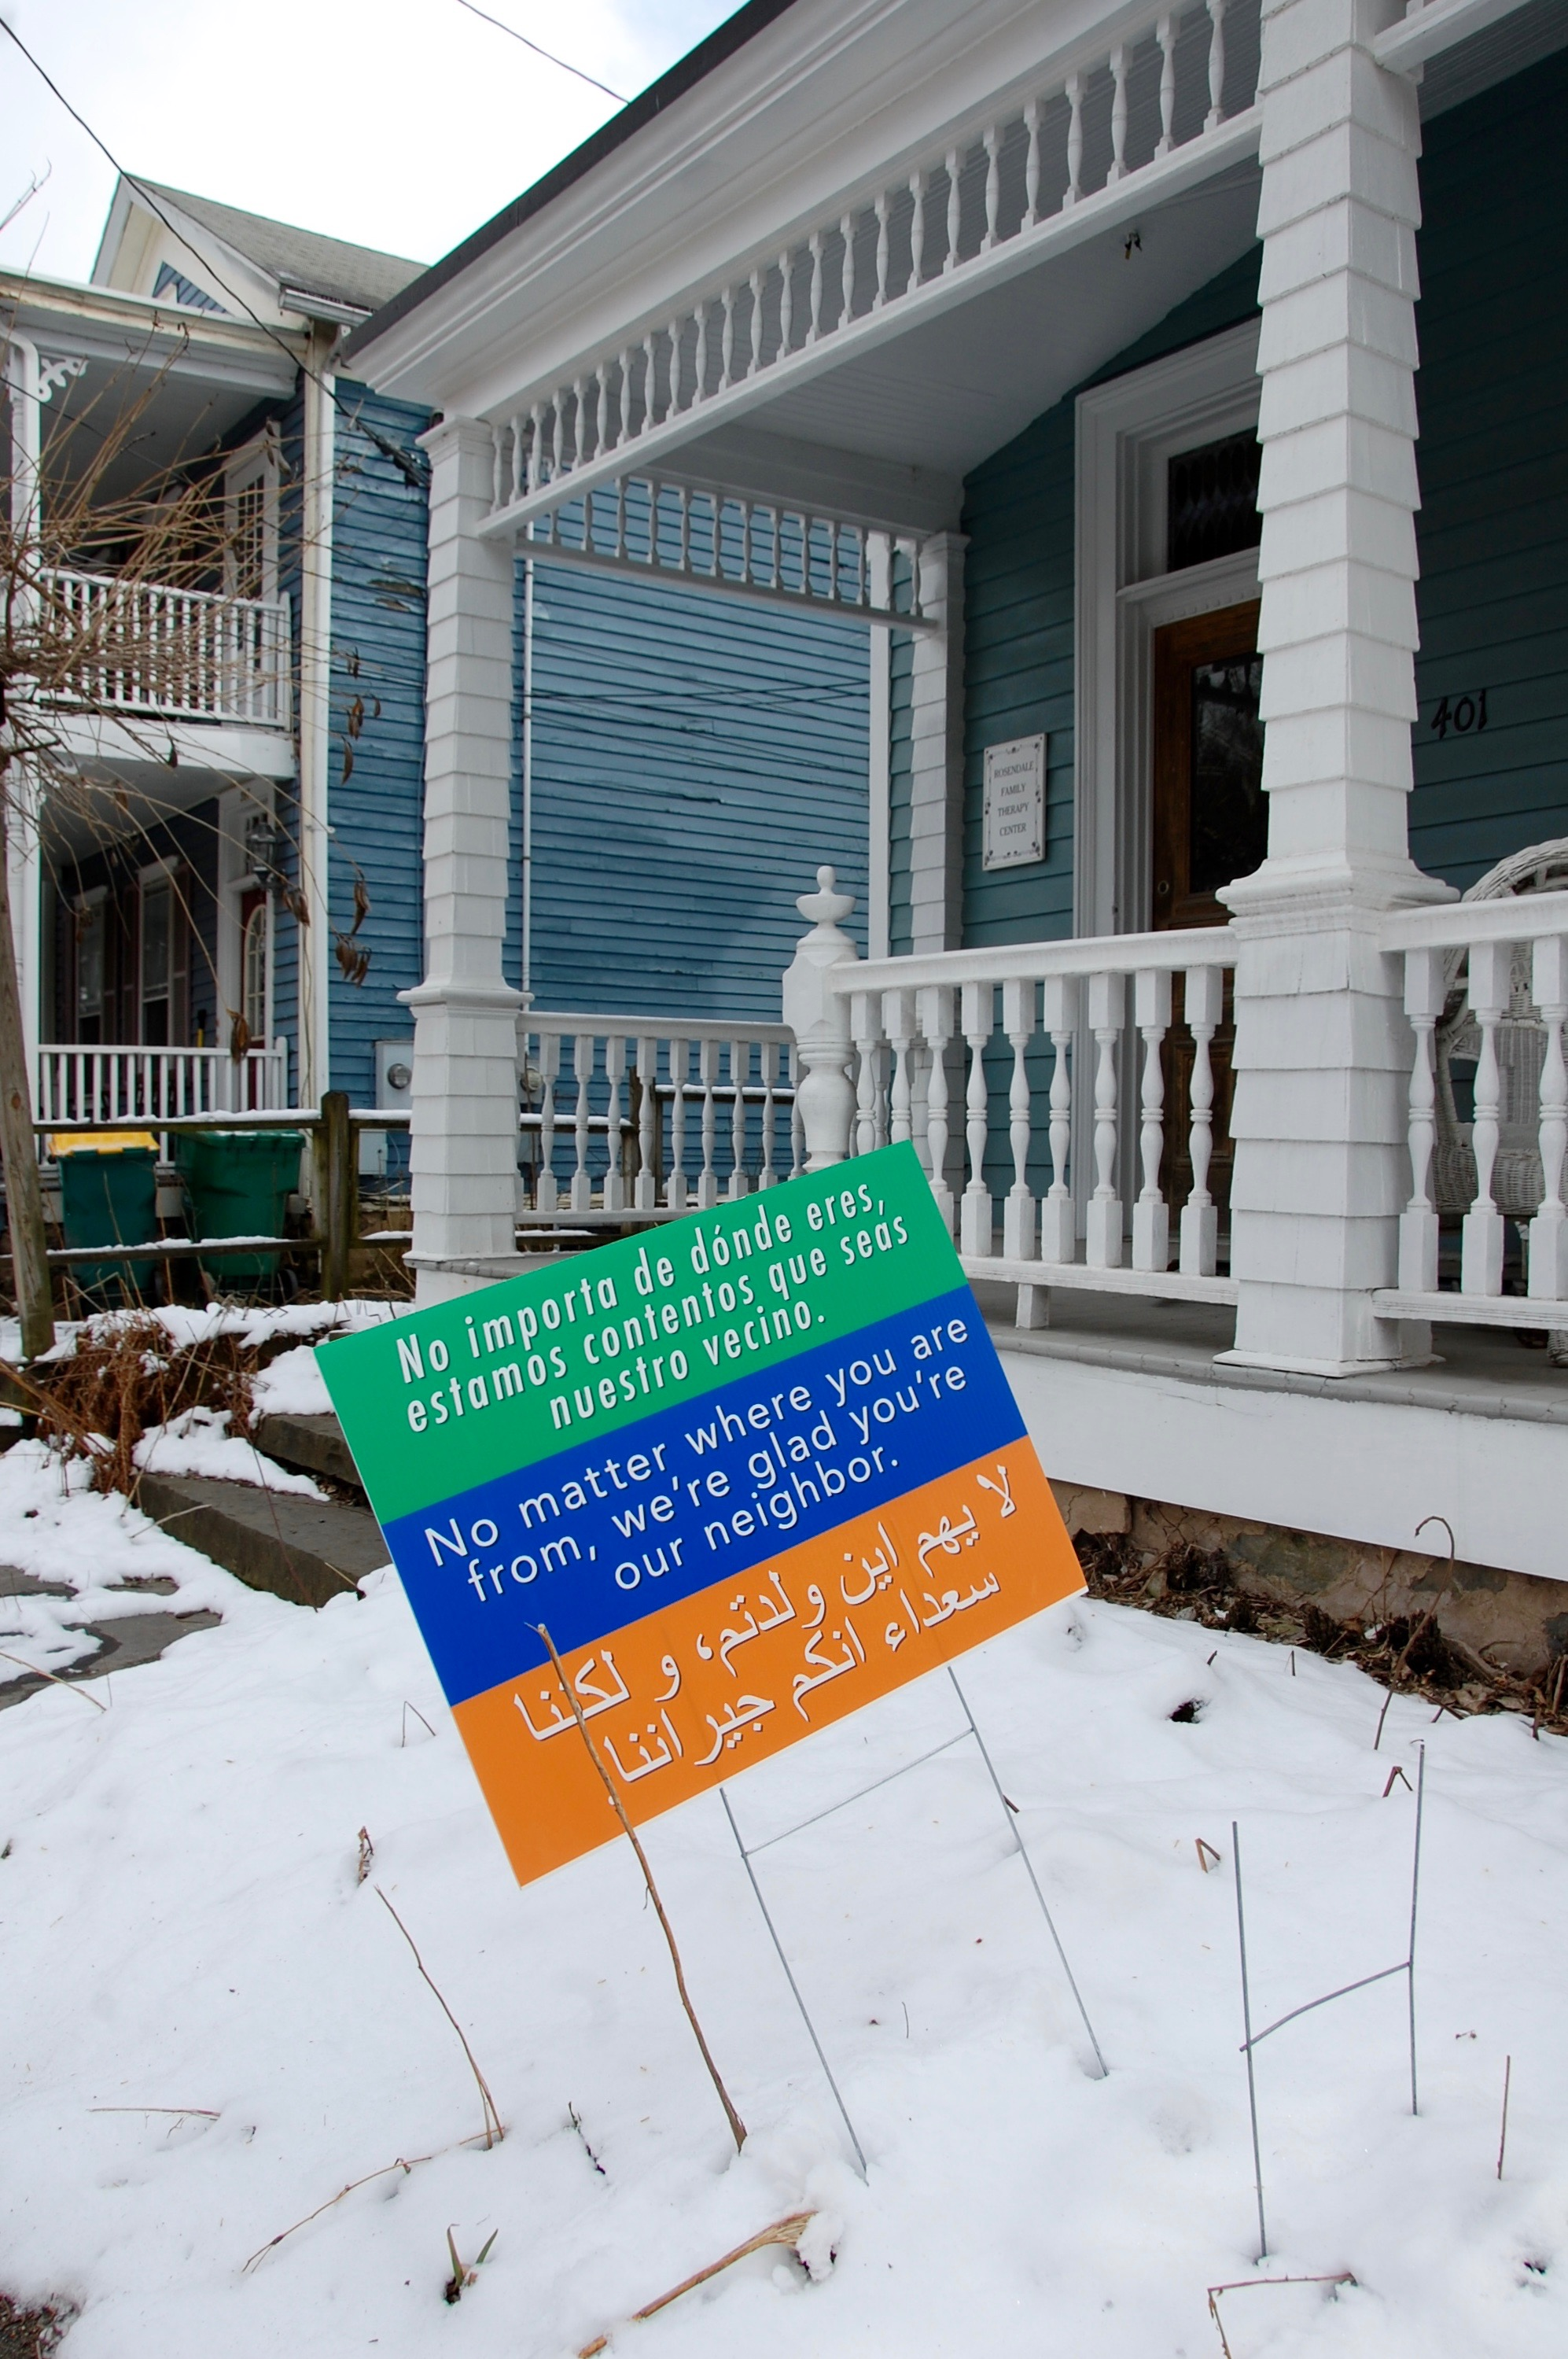 Rosendale Family Therapy Center: No matter where you are from, we're glad you're our neighbor.